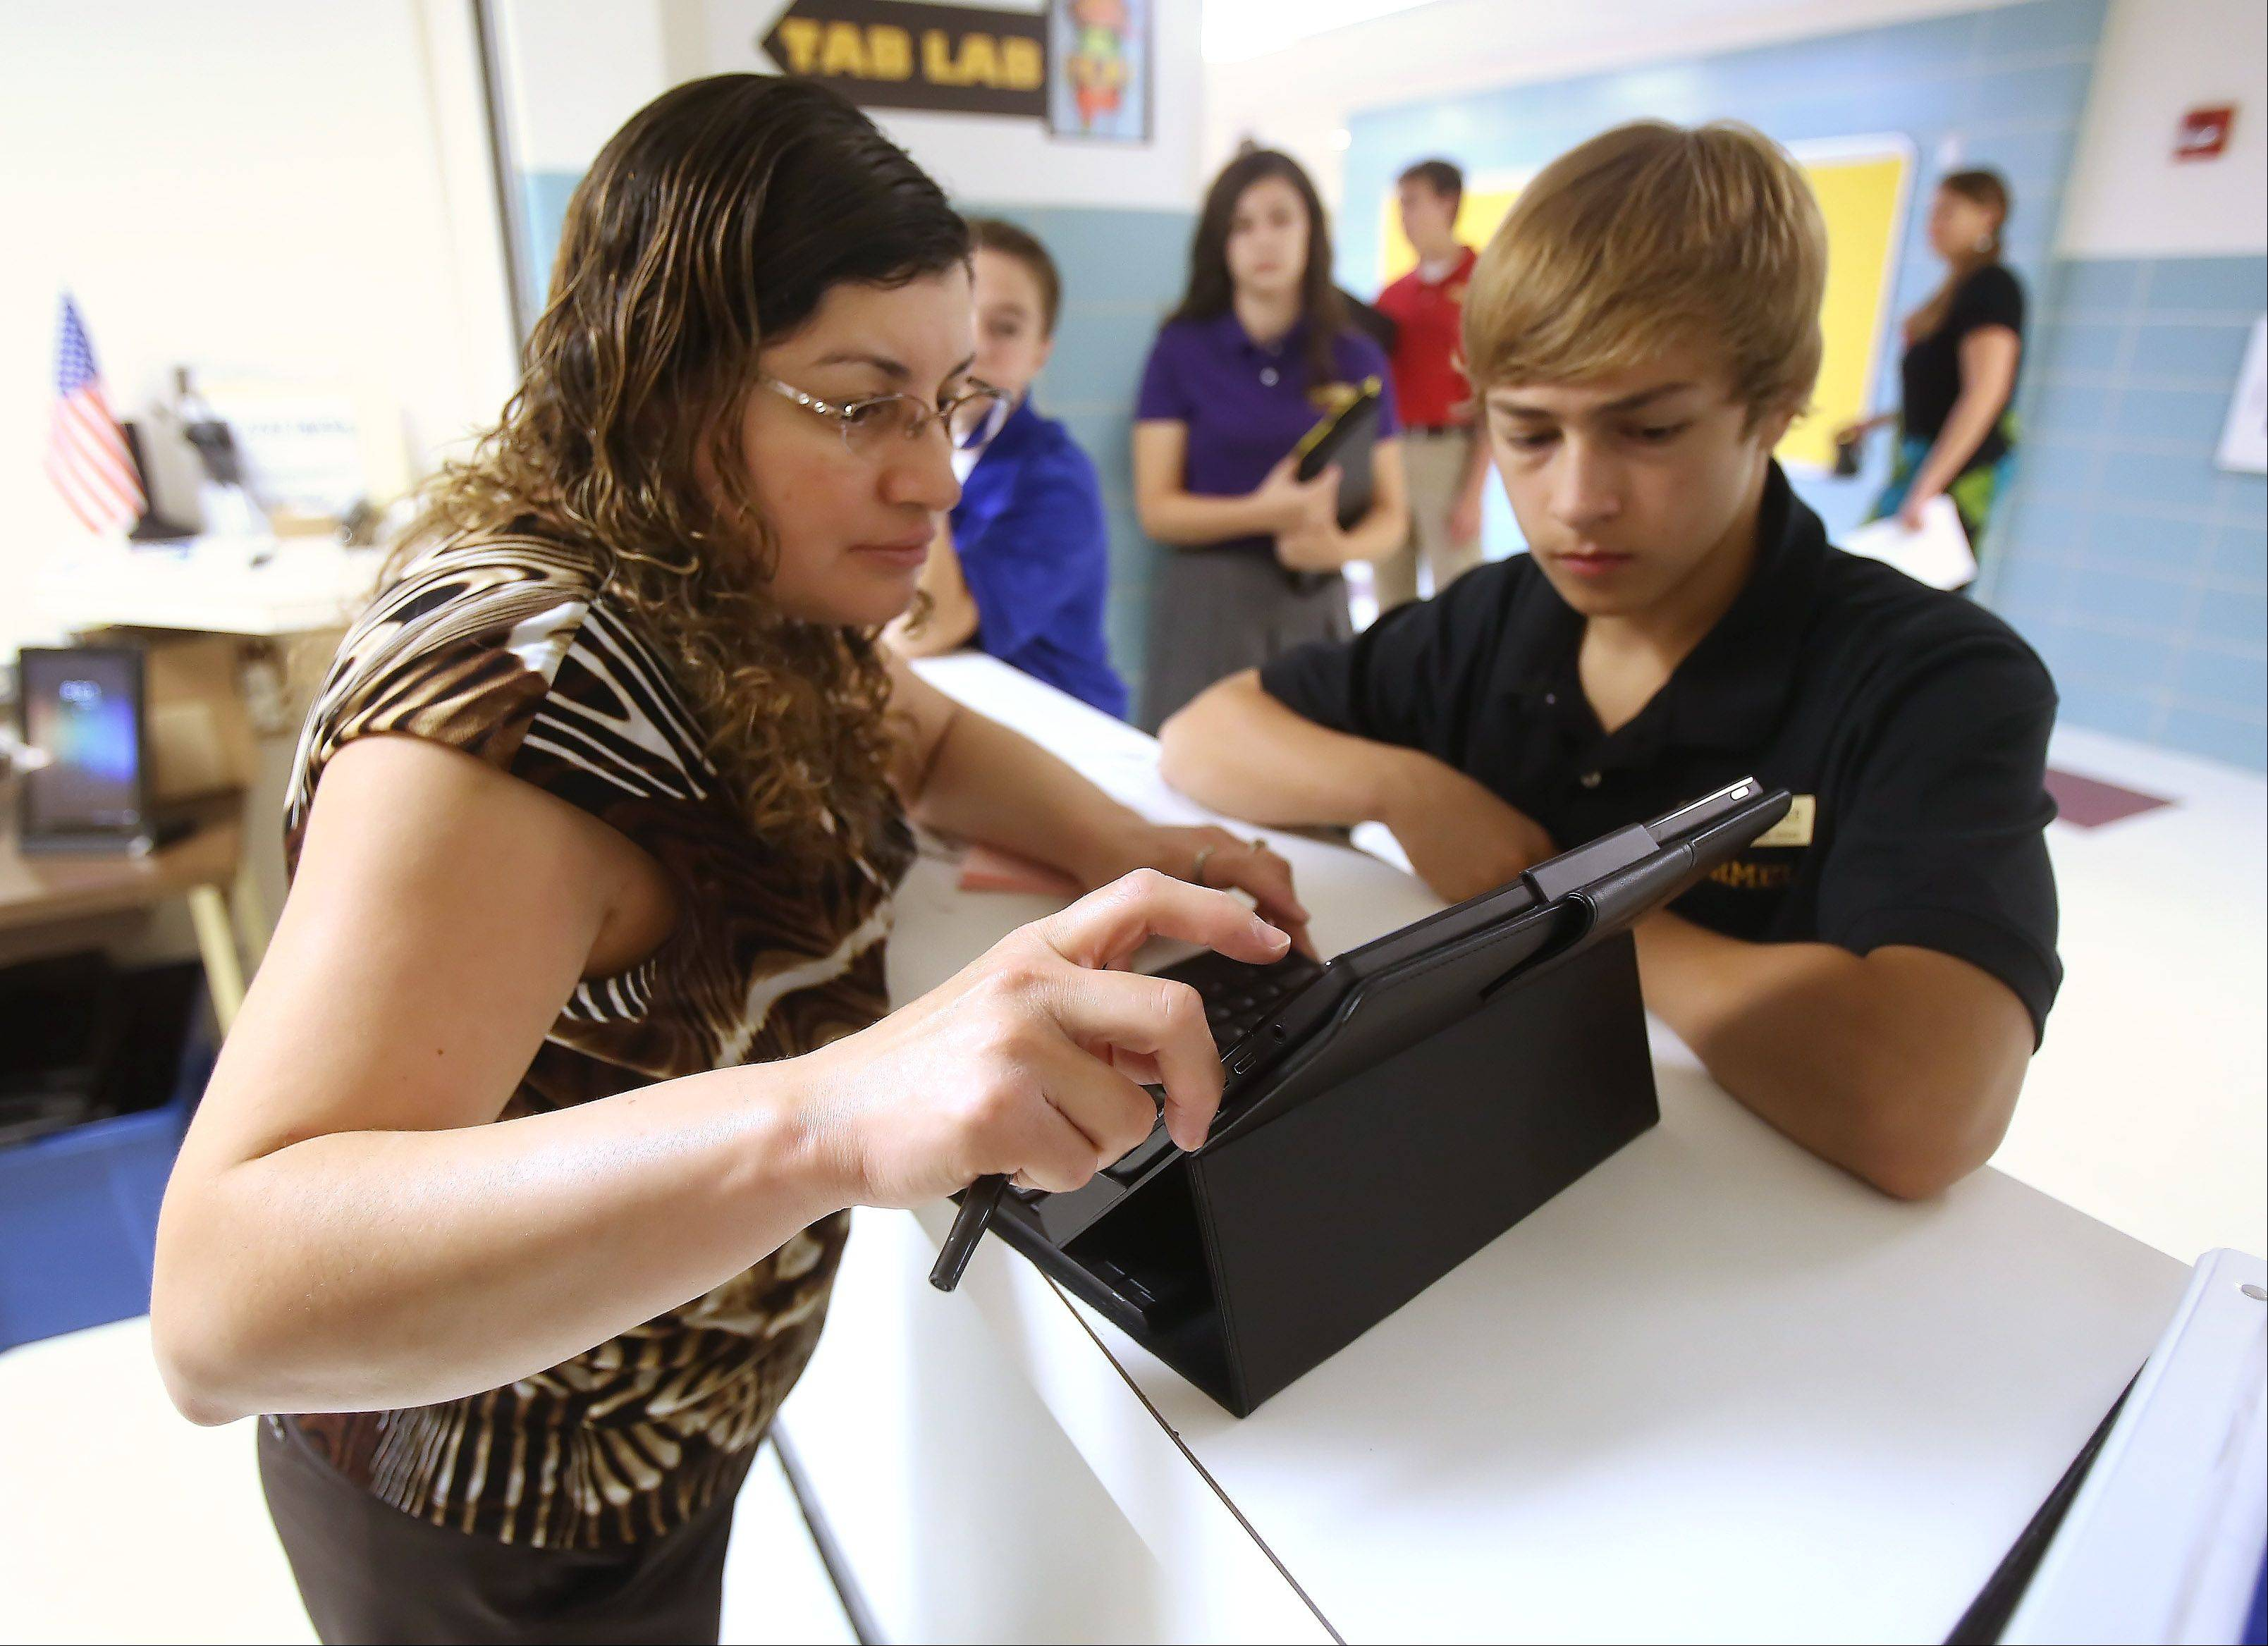 Carmel Catholic High School Tab Lab assistant Catalina Guadarrama helps Michael Tortorice with his computer tablet problem during the first day of classes Monday at the Mundelein school. Every Carmel student is given a tablet to work on during the year.